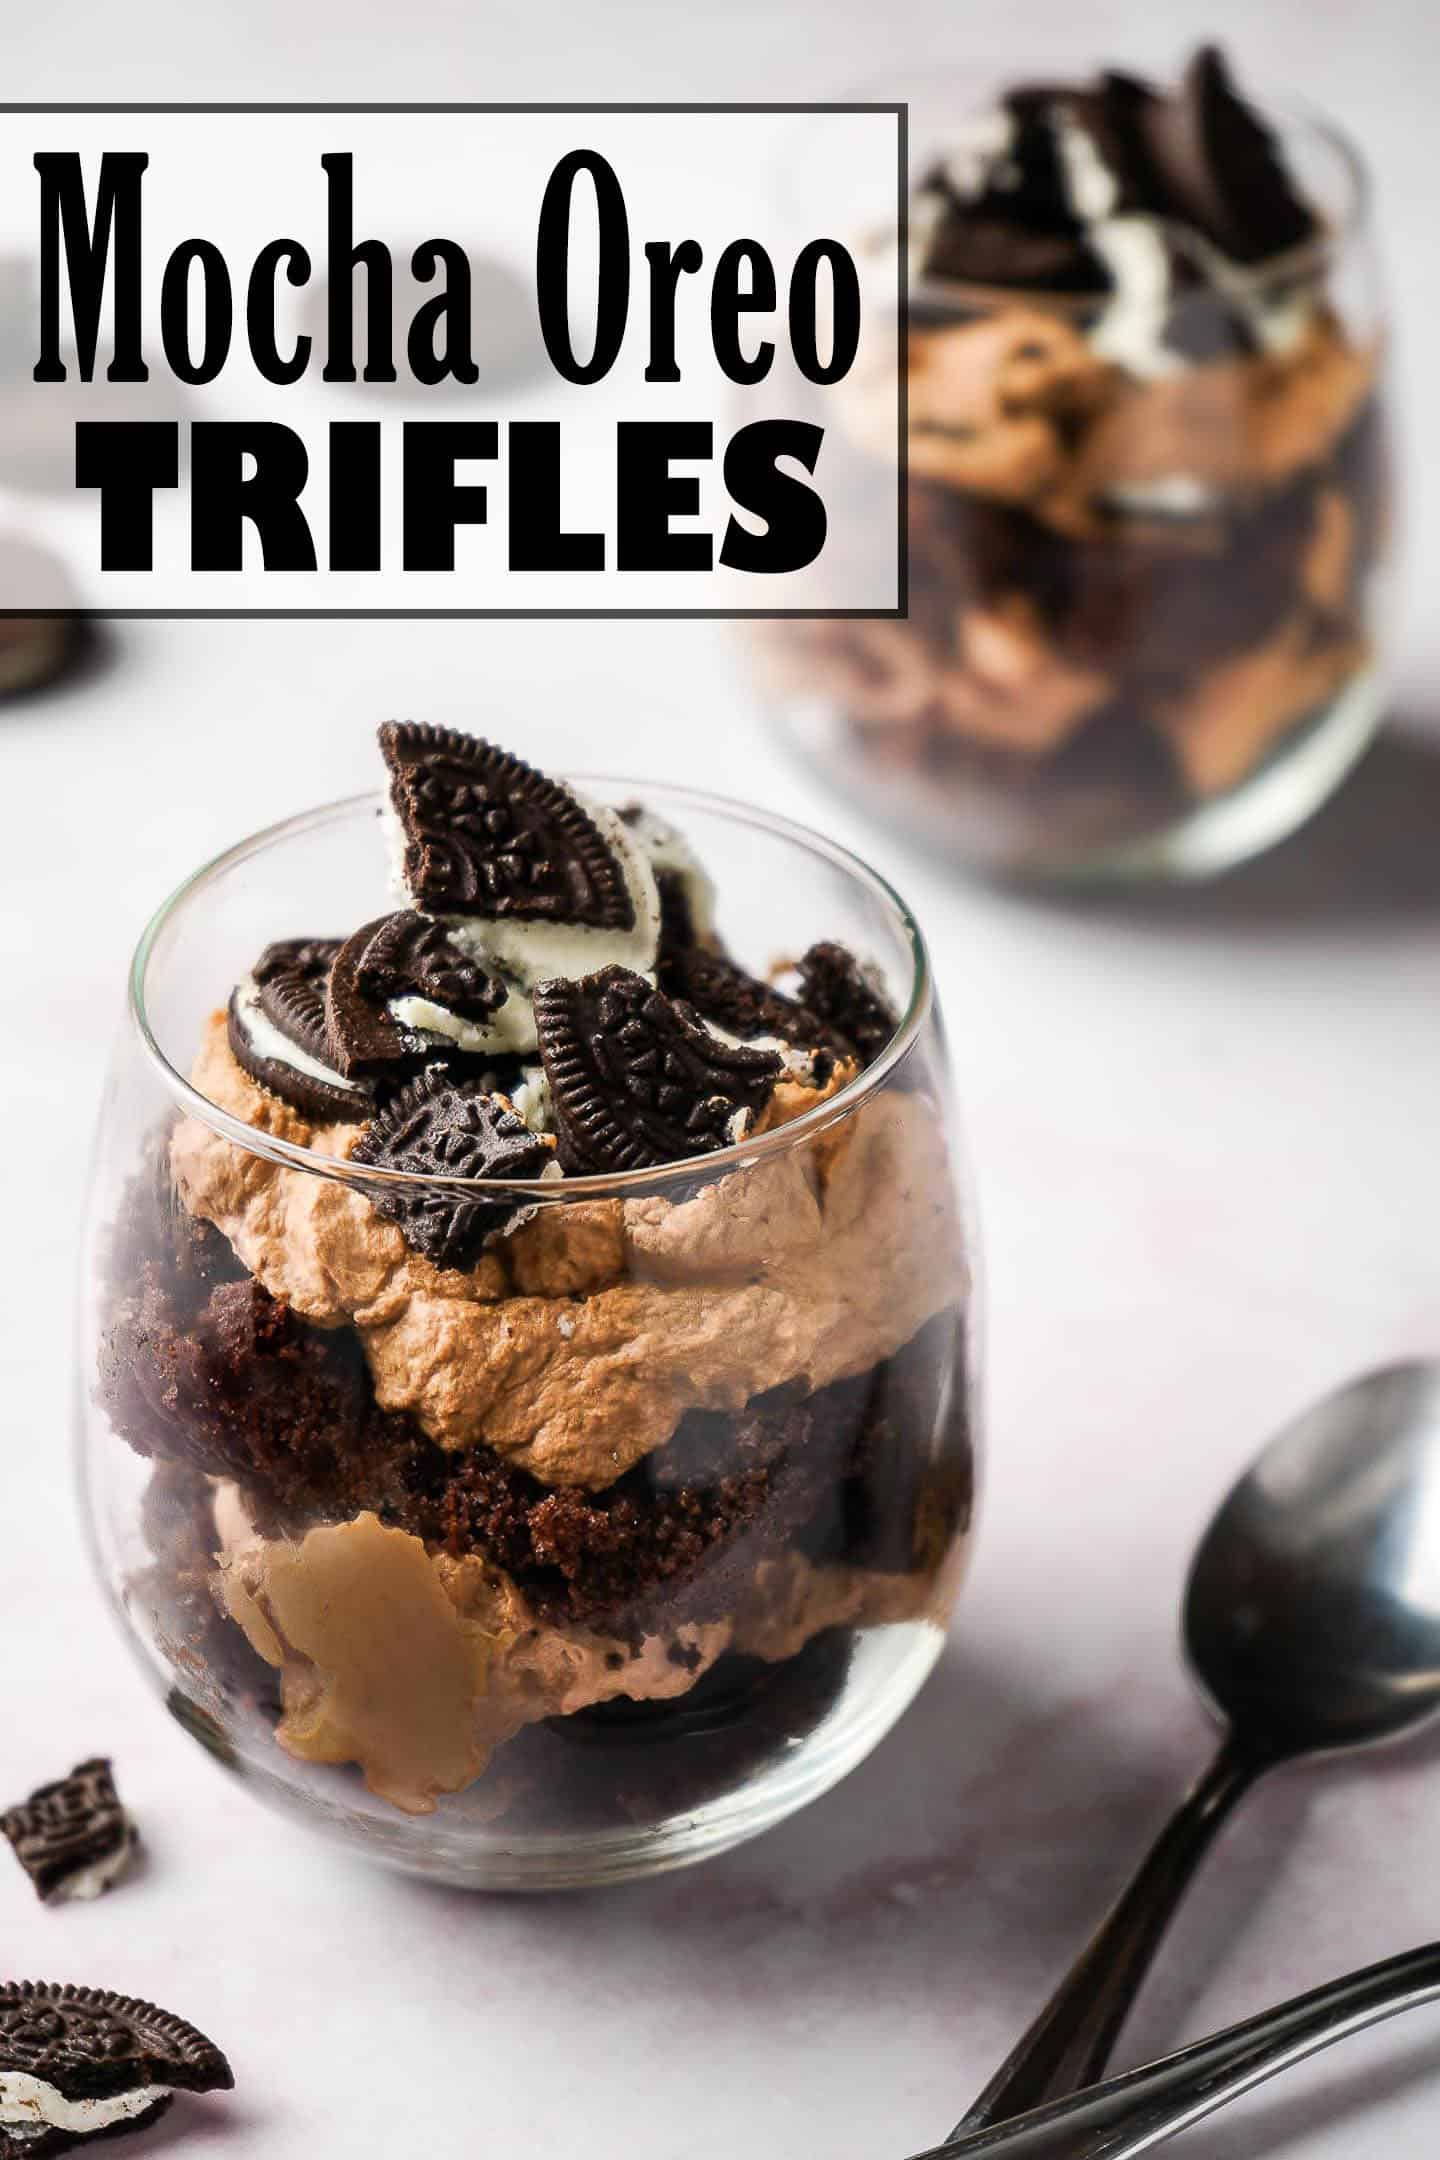 Mocha Oreo Trifles in two glasses with broken Oreos on the side